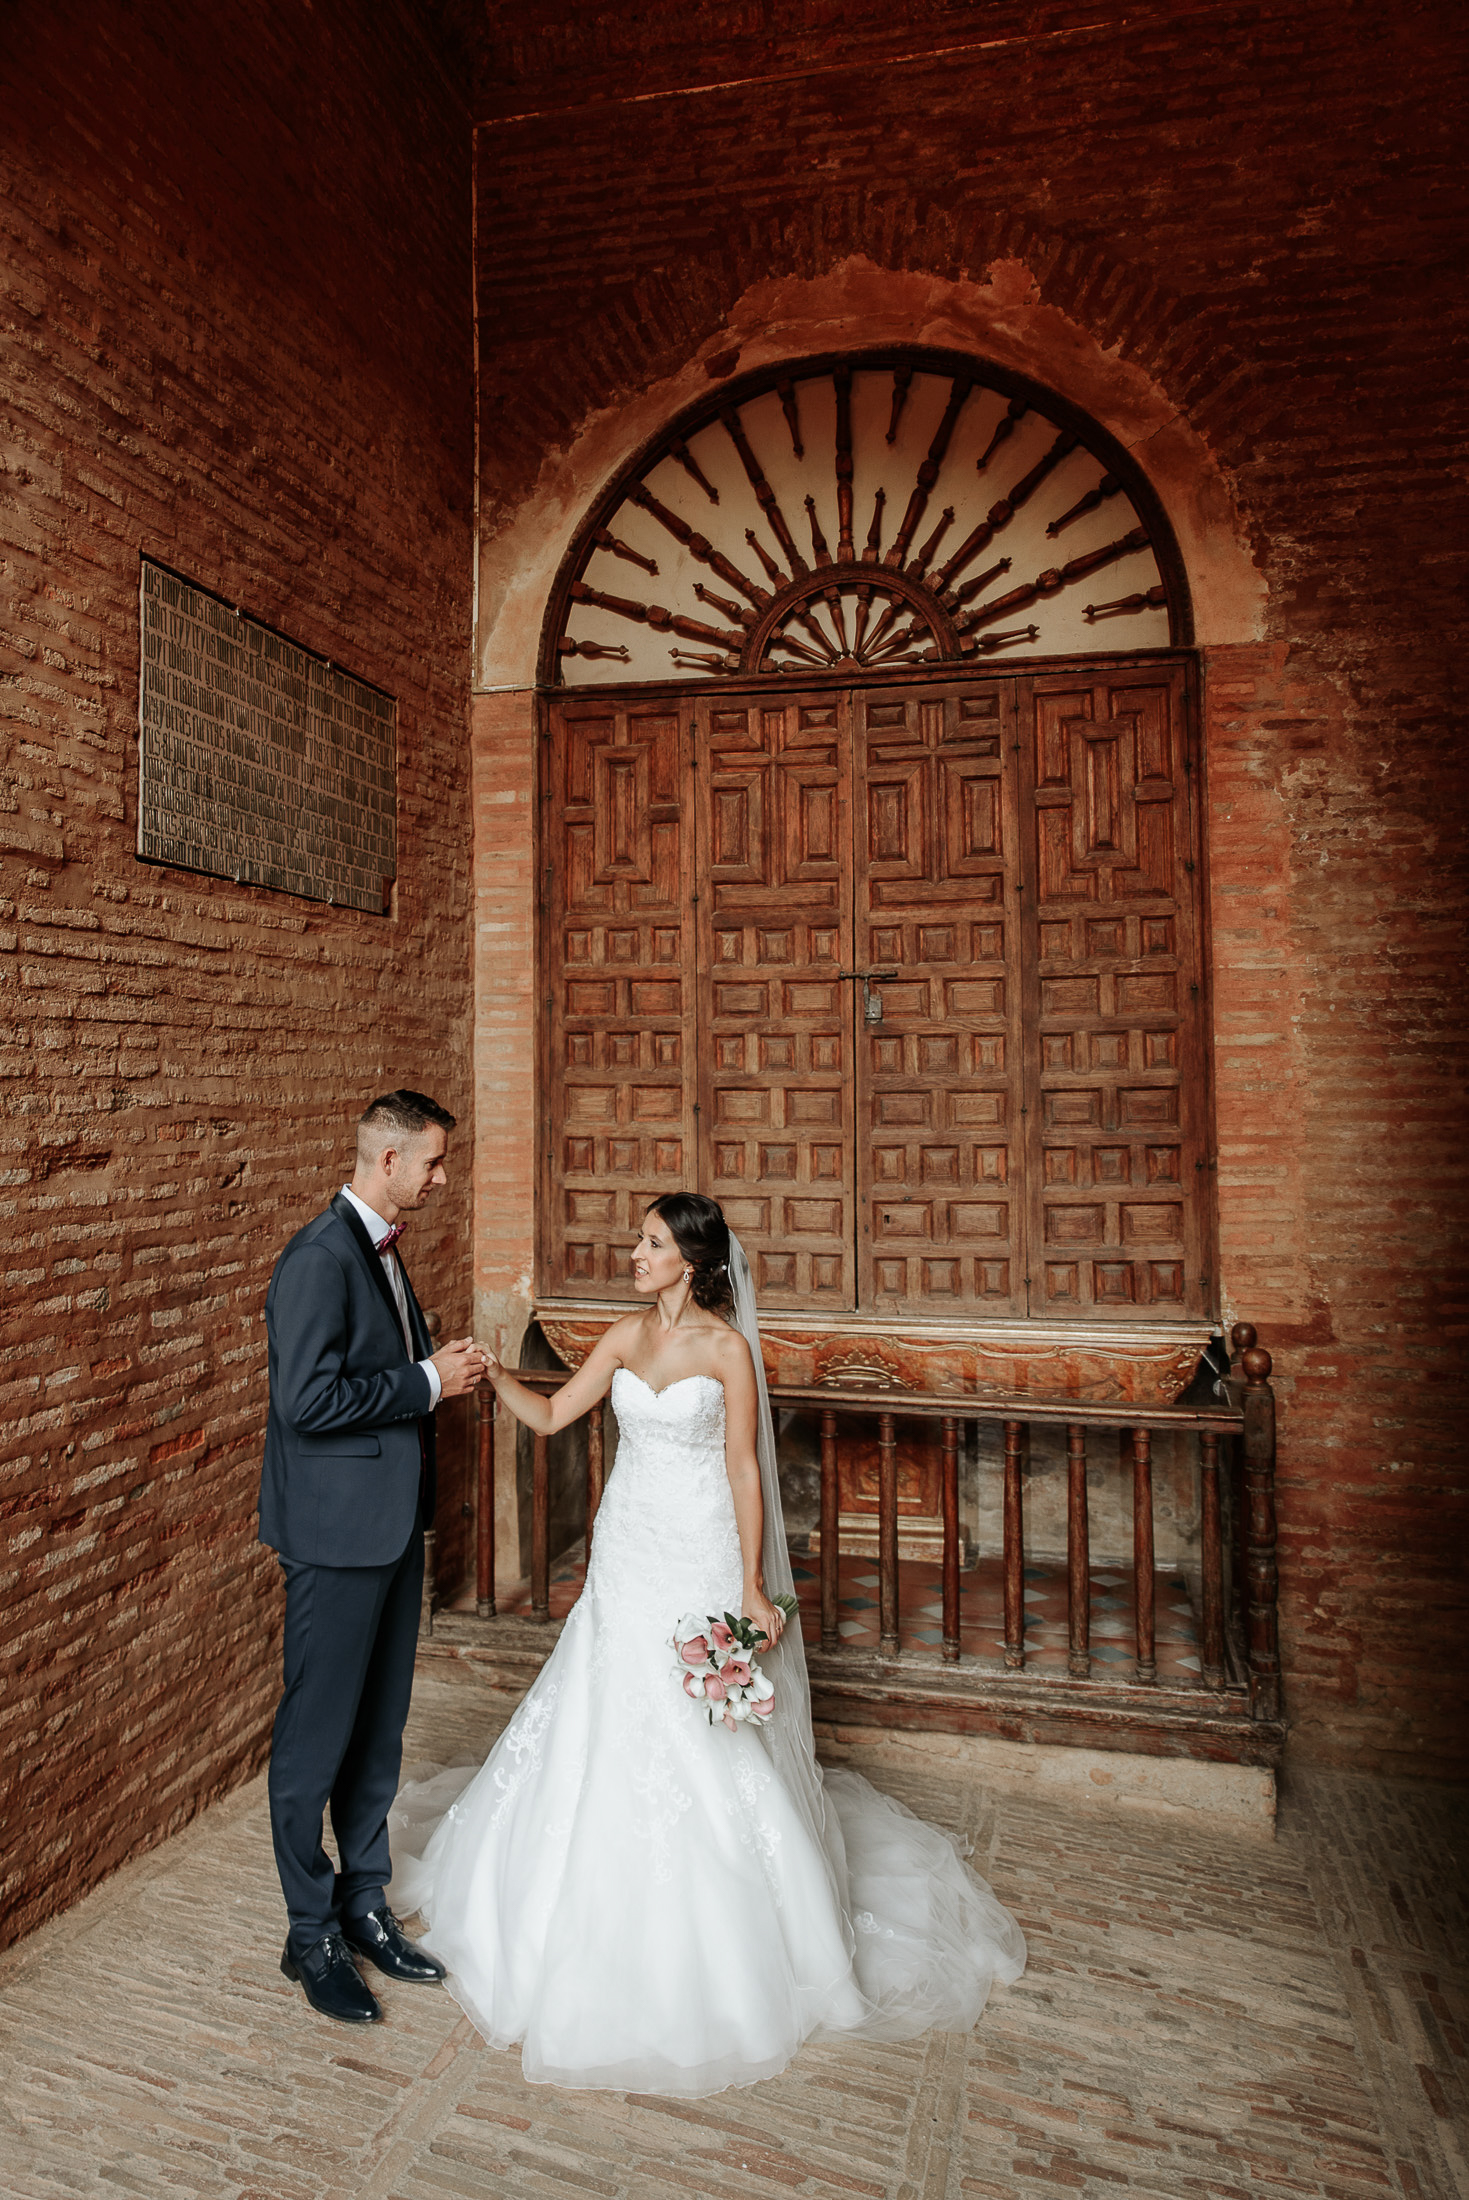 Wedding in Alhambra - Gate of Justice